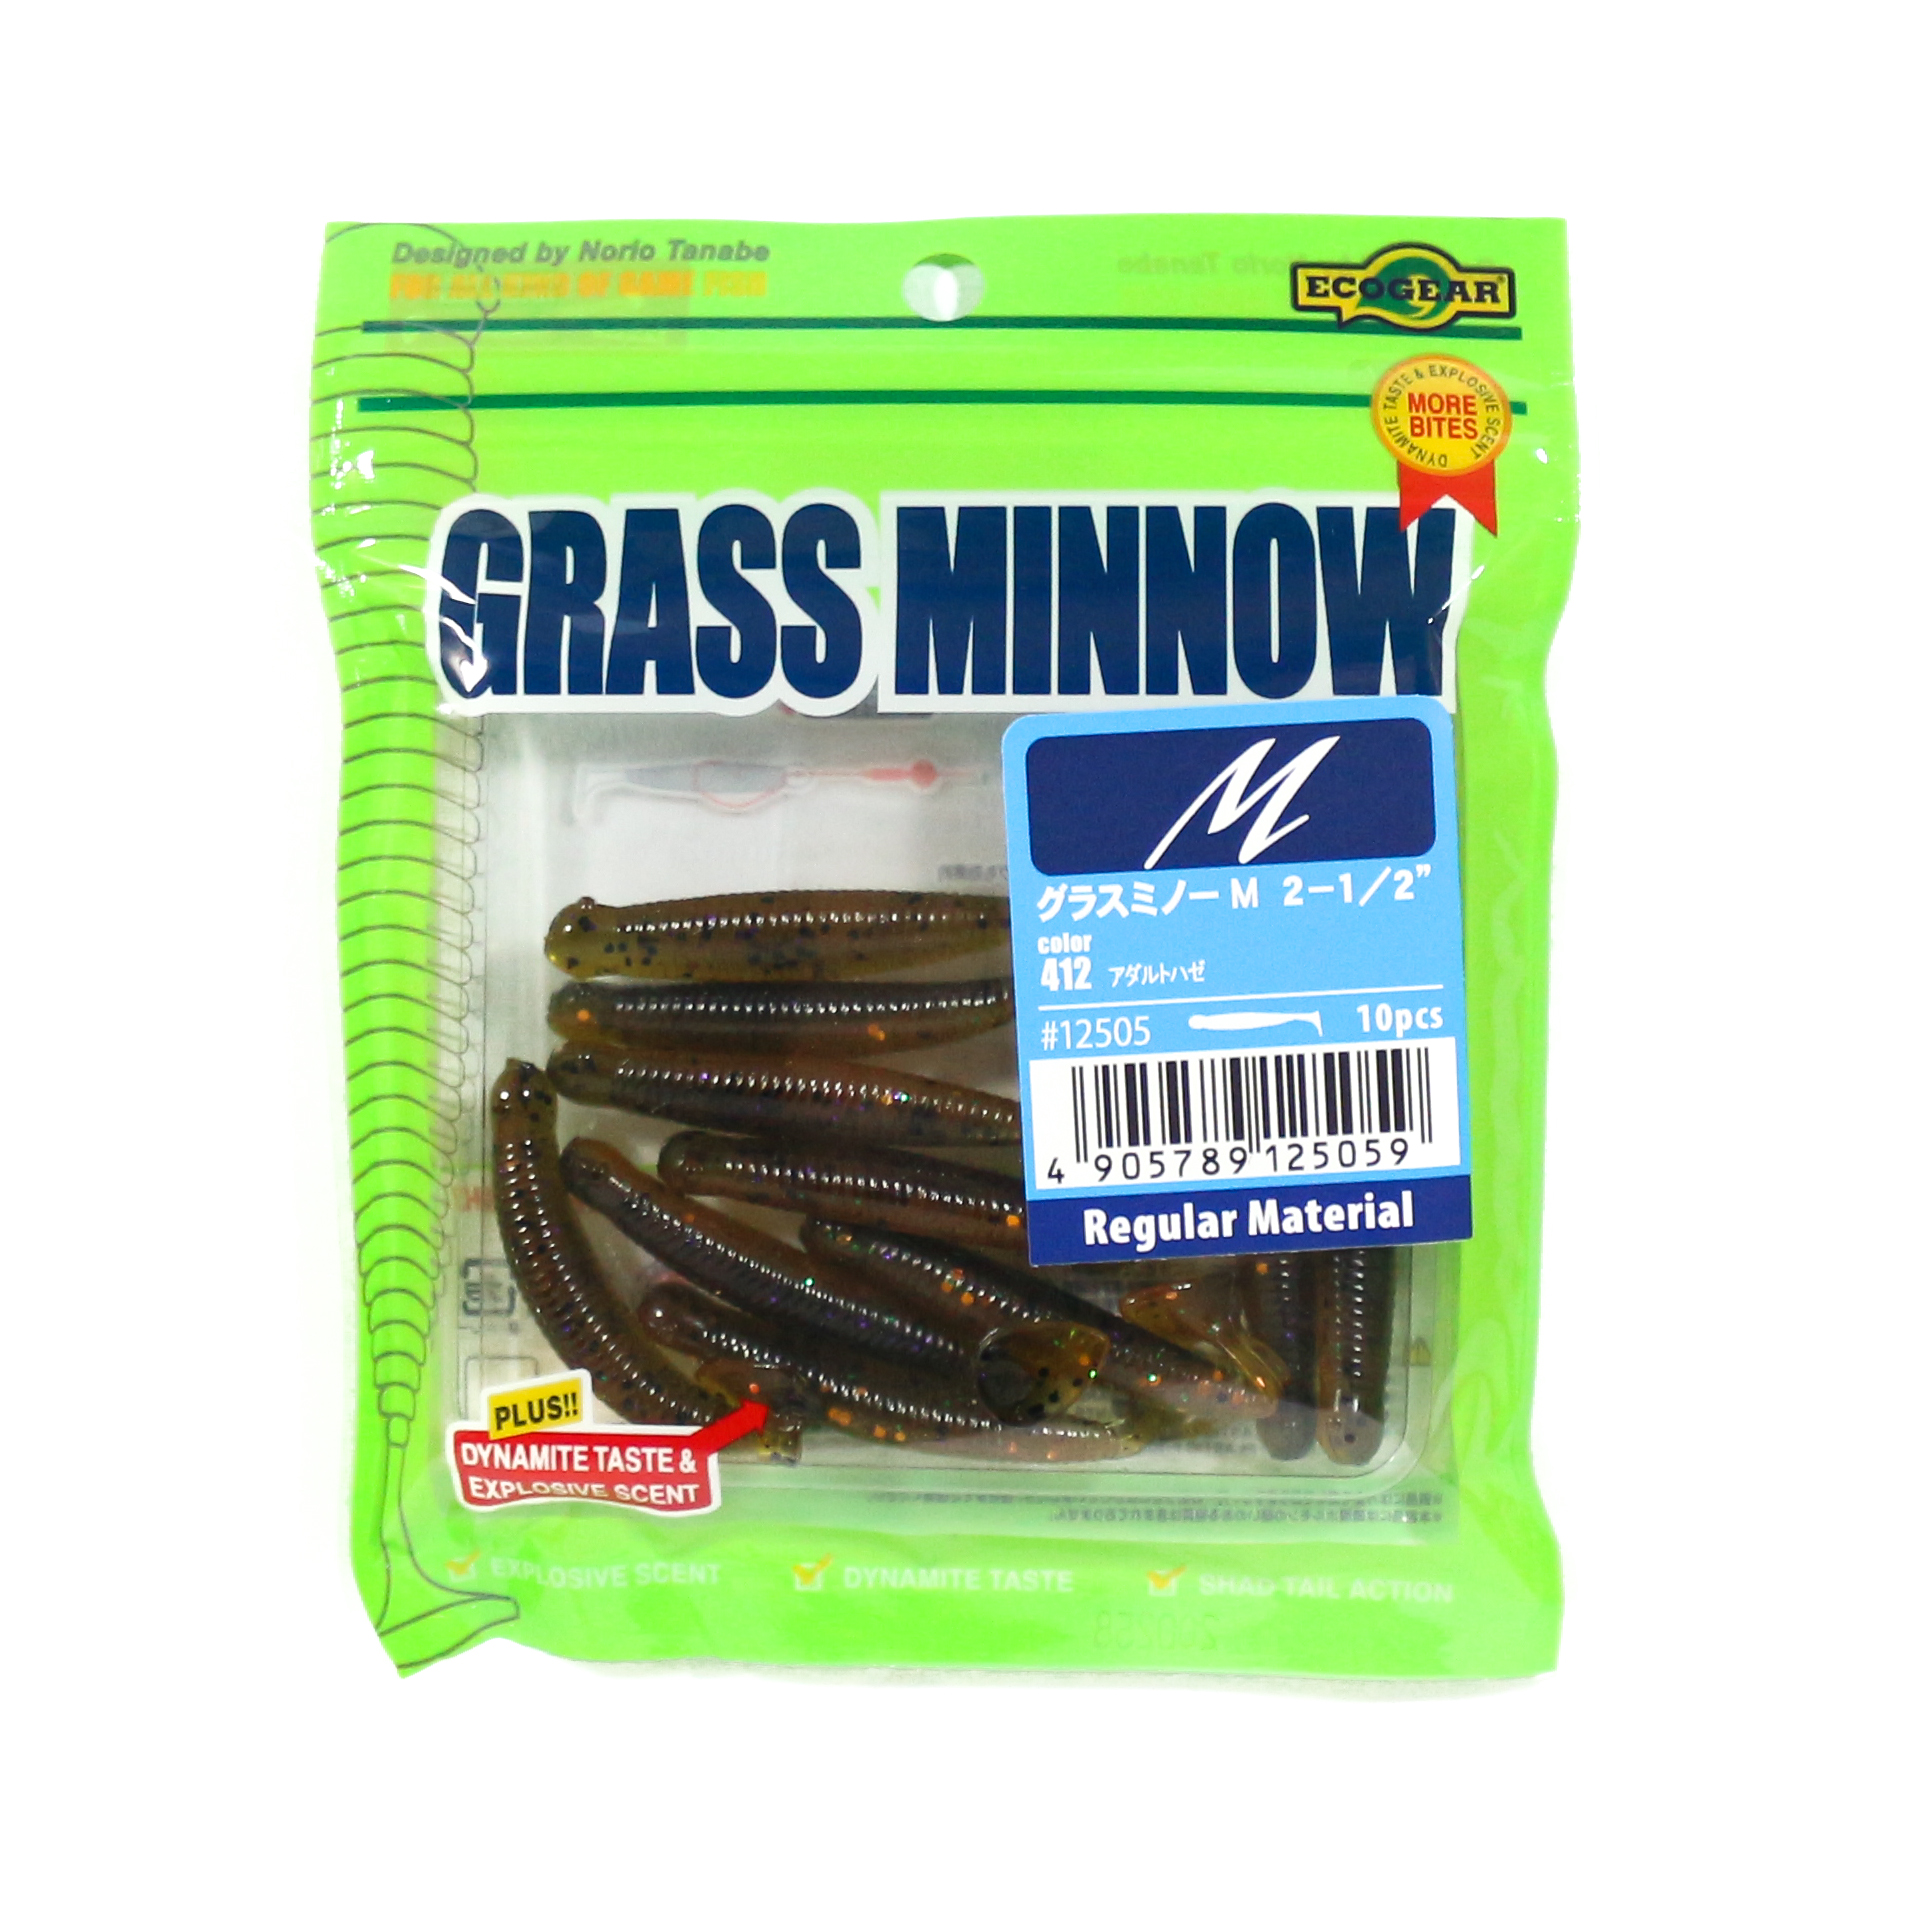 Ecogear Soft Lure Grass Minnow M 2-1/2 Inch 10 piece per pack 412 (5059)